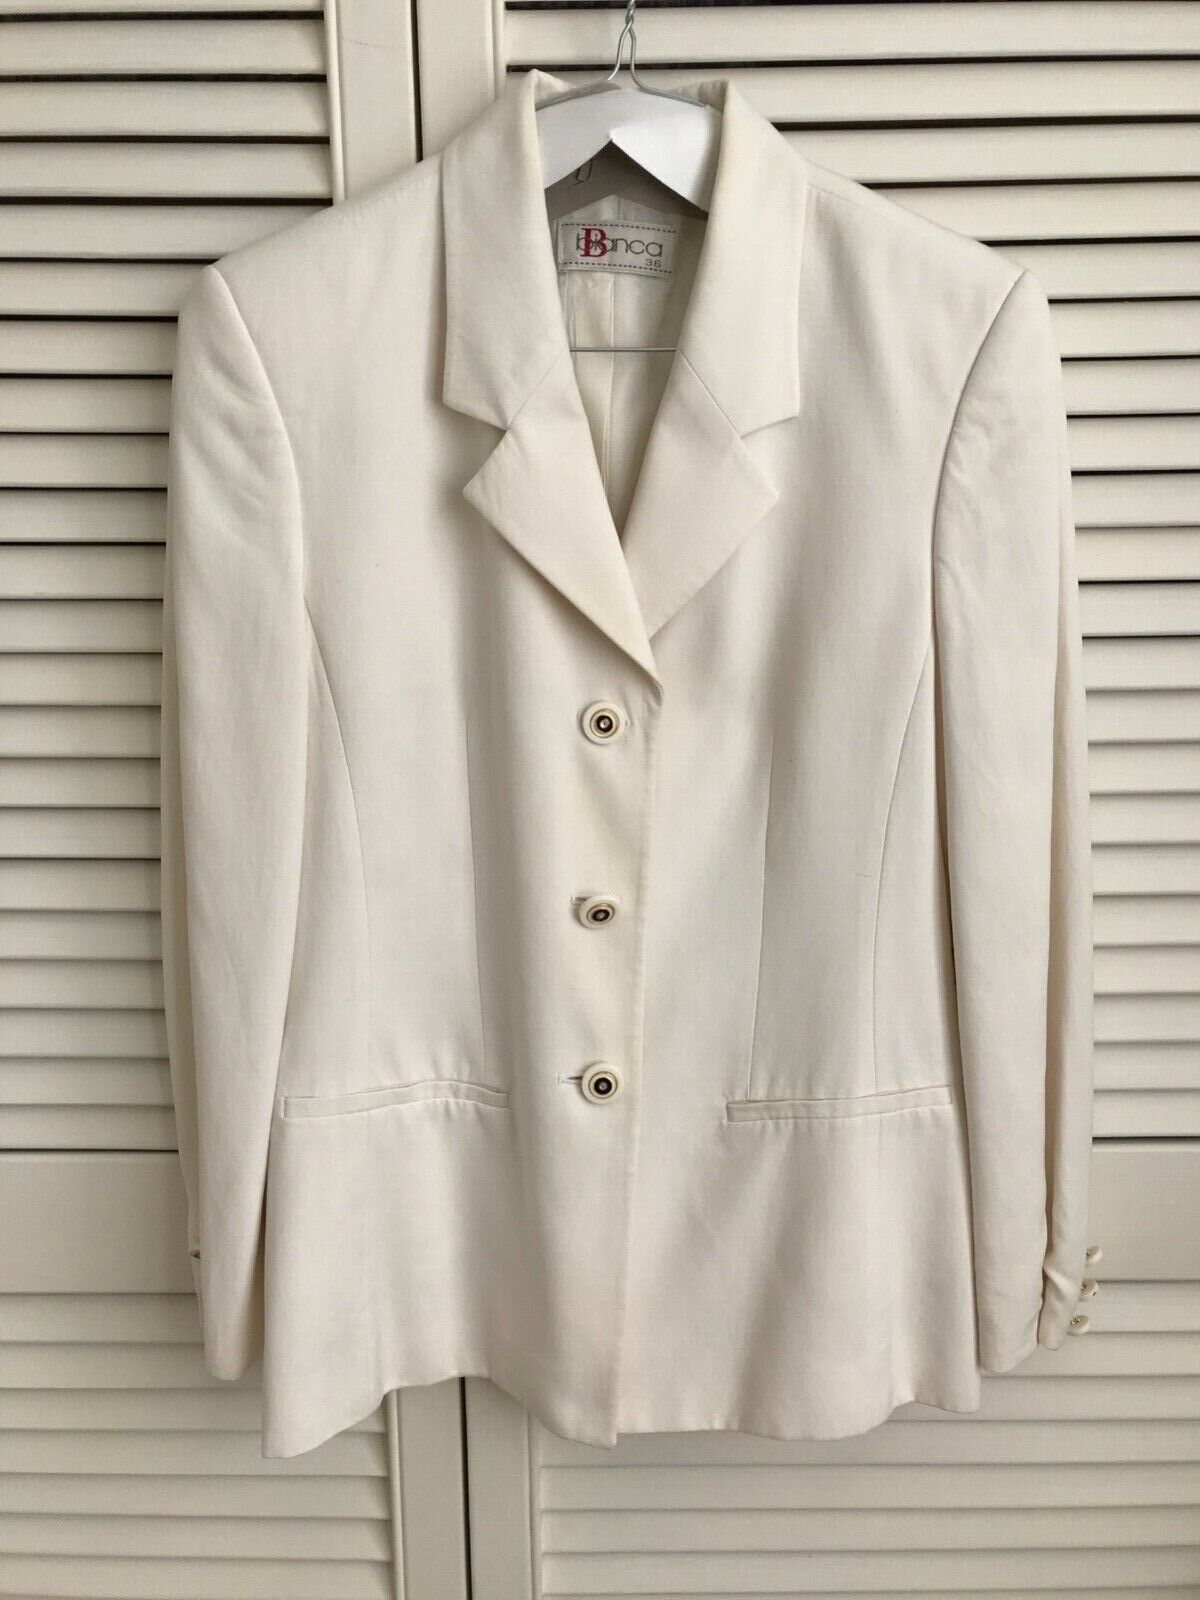 Bianca jacket. 36. white ivory. beautiful buttons. Good condition. Dry cleaned.